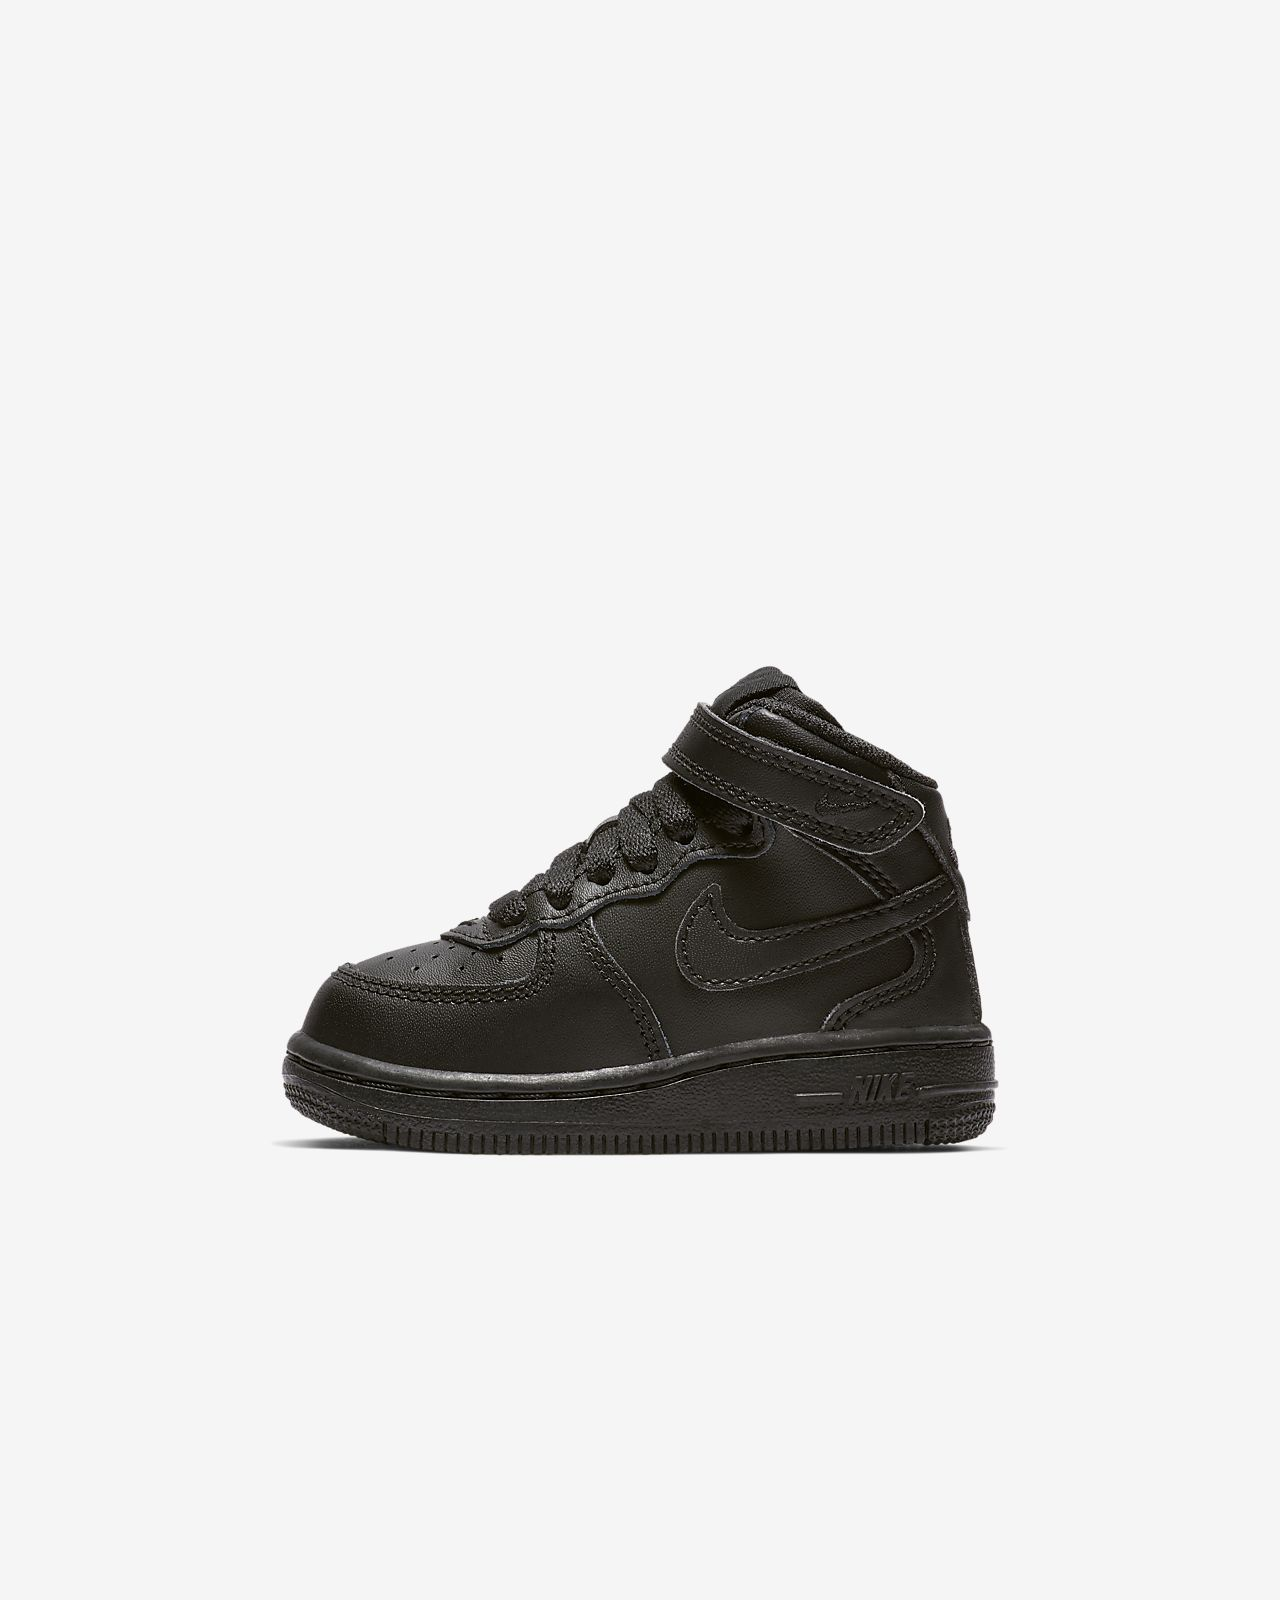 newest collection 66e3b b47e3 ... Sko Nike Air Force 1 Mid för baby små barn